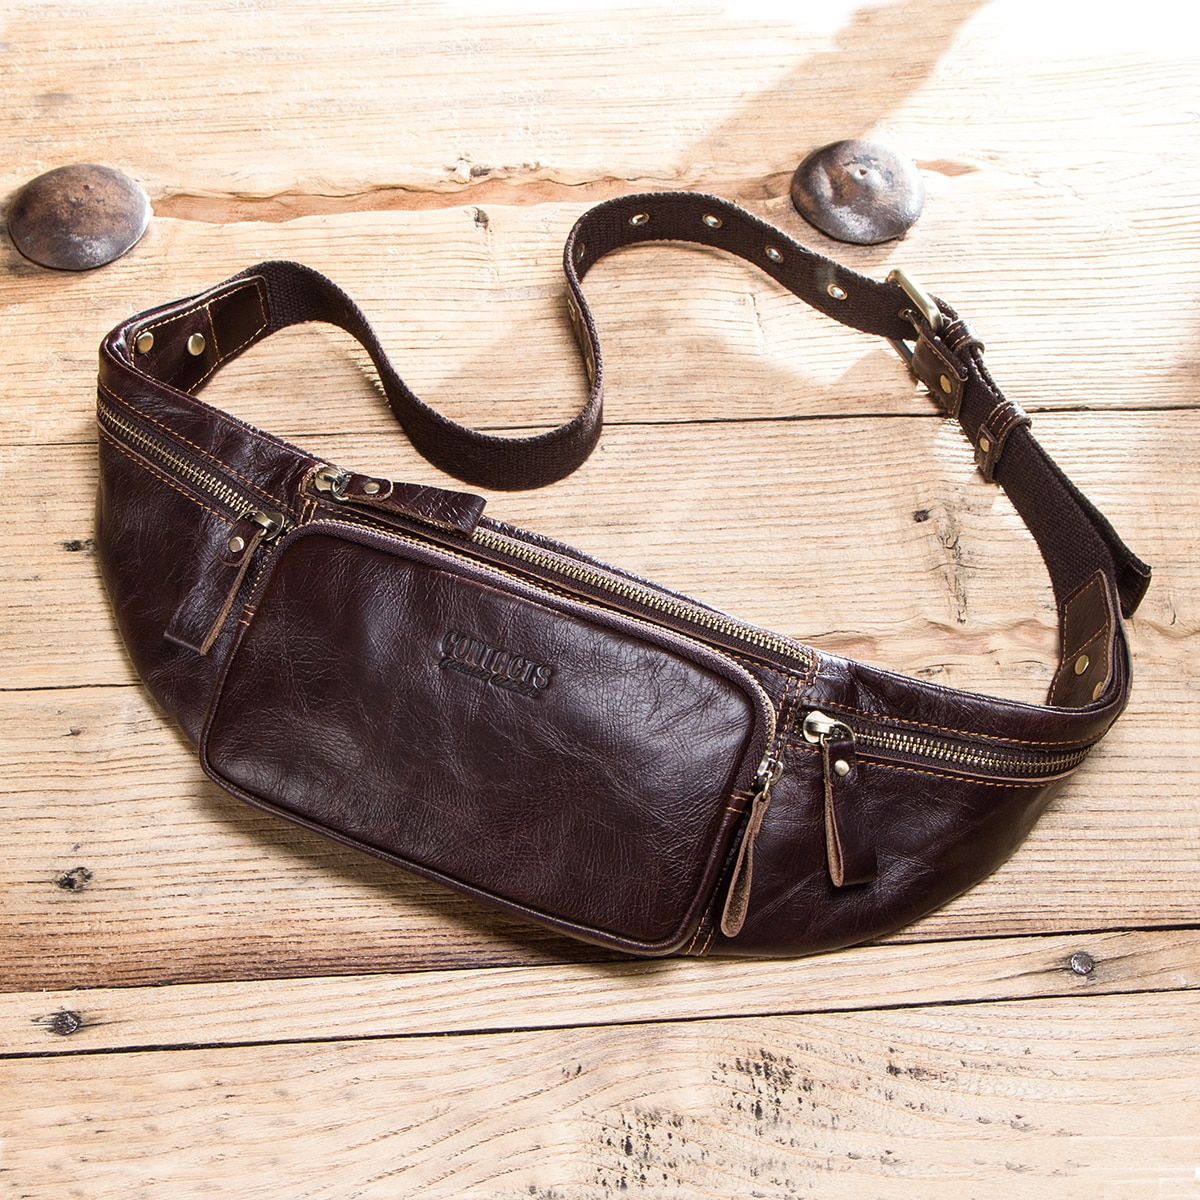 yiang new men s genuine leather cowhide vintage belt pouch purse fanny pack waist bag for cell mobile phone case cover skin Genuine Leather Cellphone Waist Bag For Men Travel Waist Pack Vintage Fanny Pack Male Belt Pouch Bag Casual Cell Phone Chest Bag